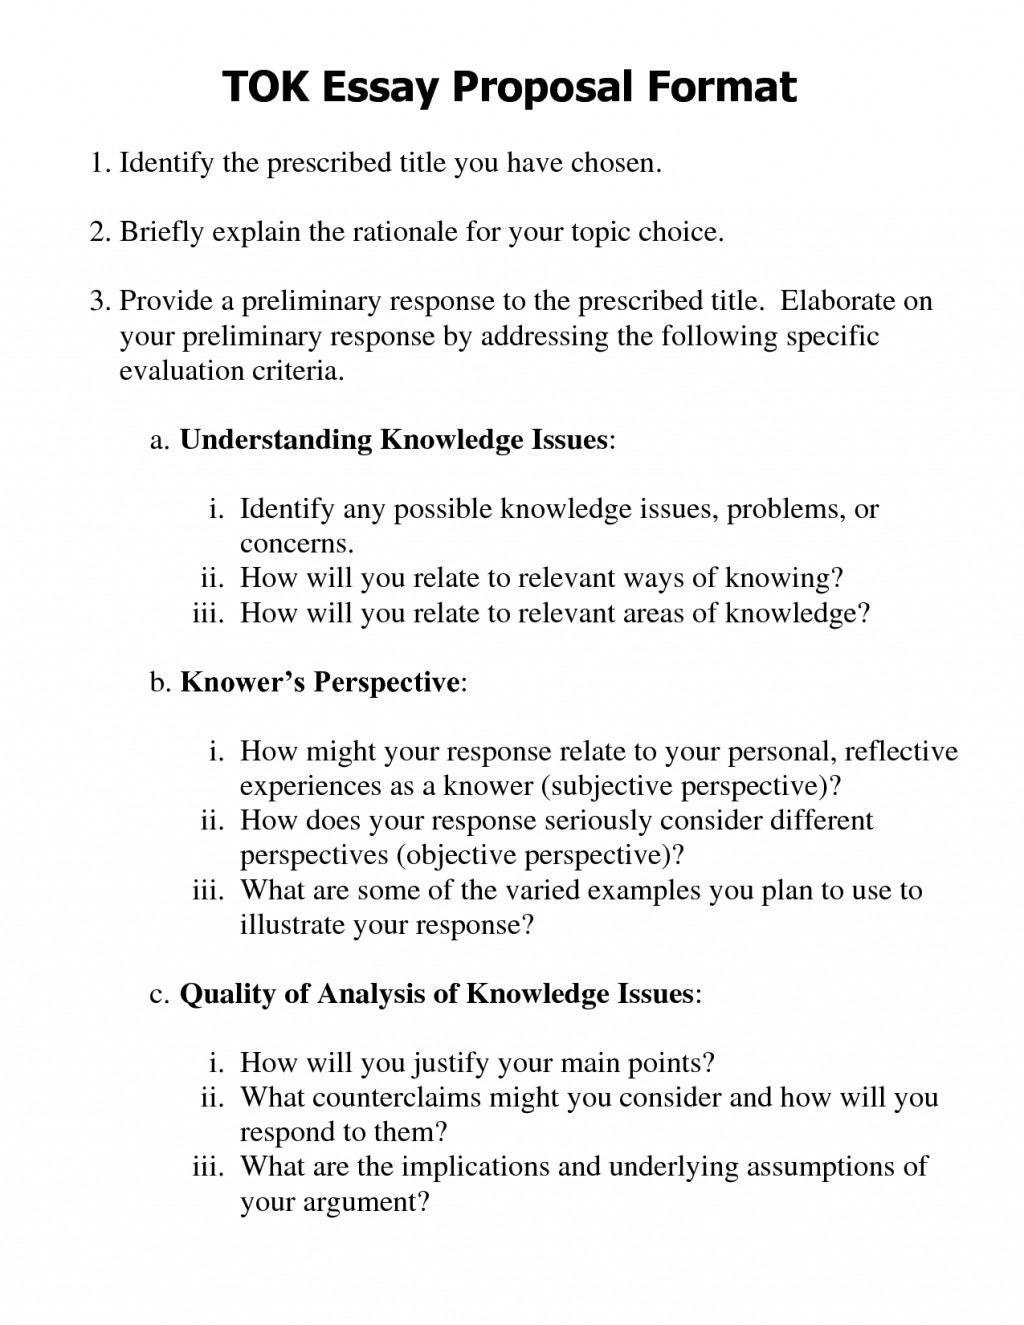 001 Olxkktmp0l Proposal Essays Essay Awesome Modest Examples On Bullying Large